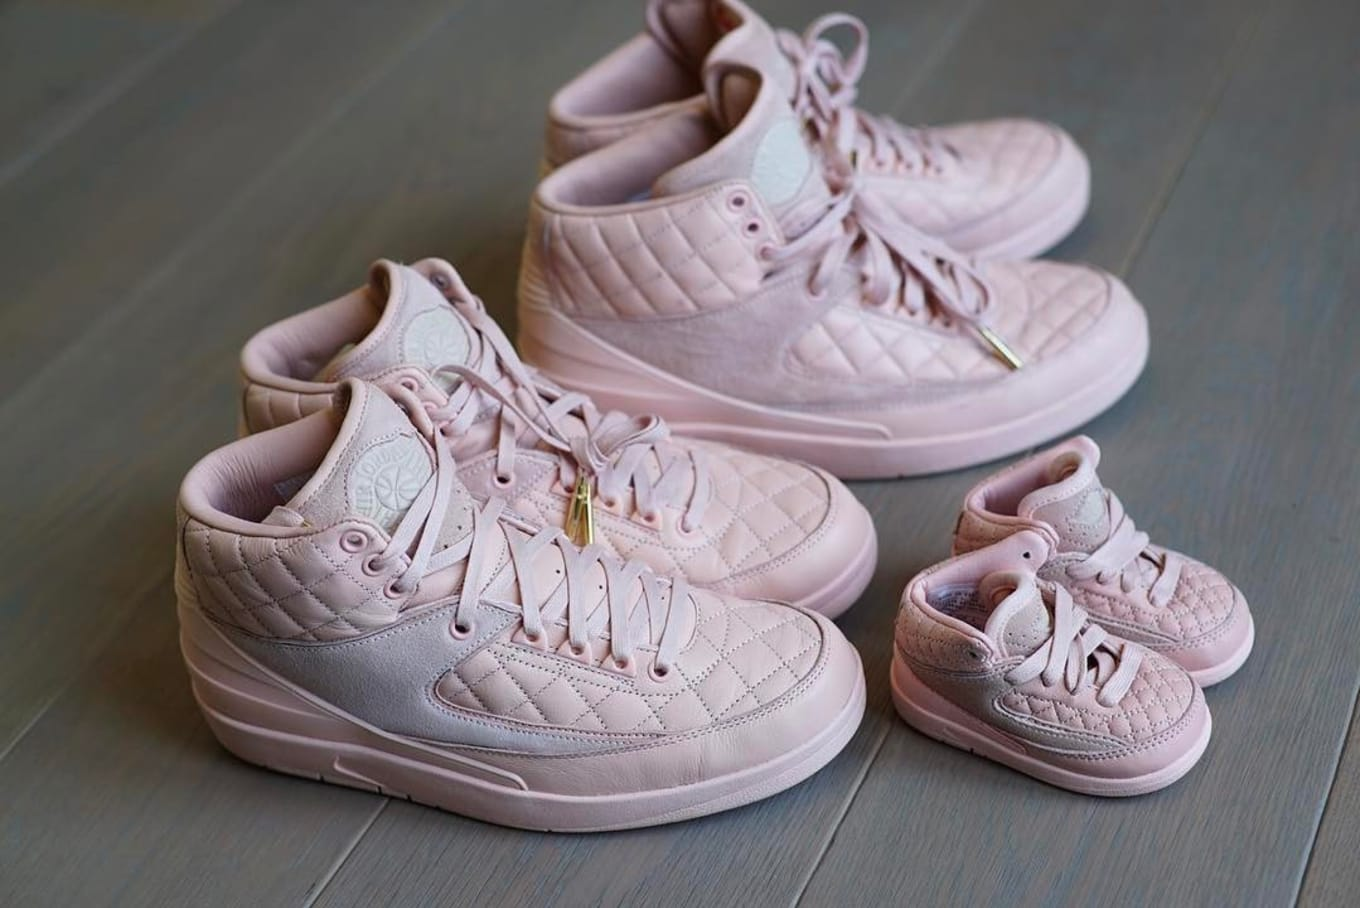 check out 6dd86 31761 Why Don C s  Arctic Orange  Air Jordan 2 Is Only Releasing In Kids  Sizes.  Confirmed release date for the next colorway.